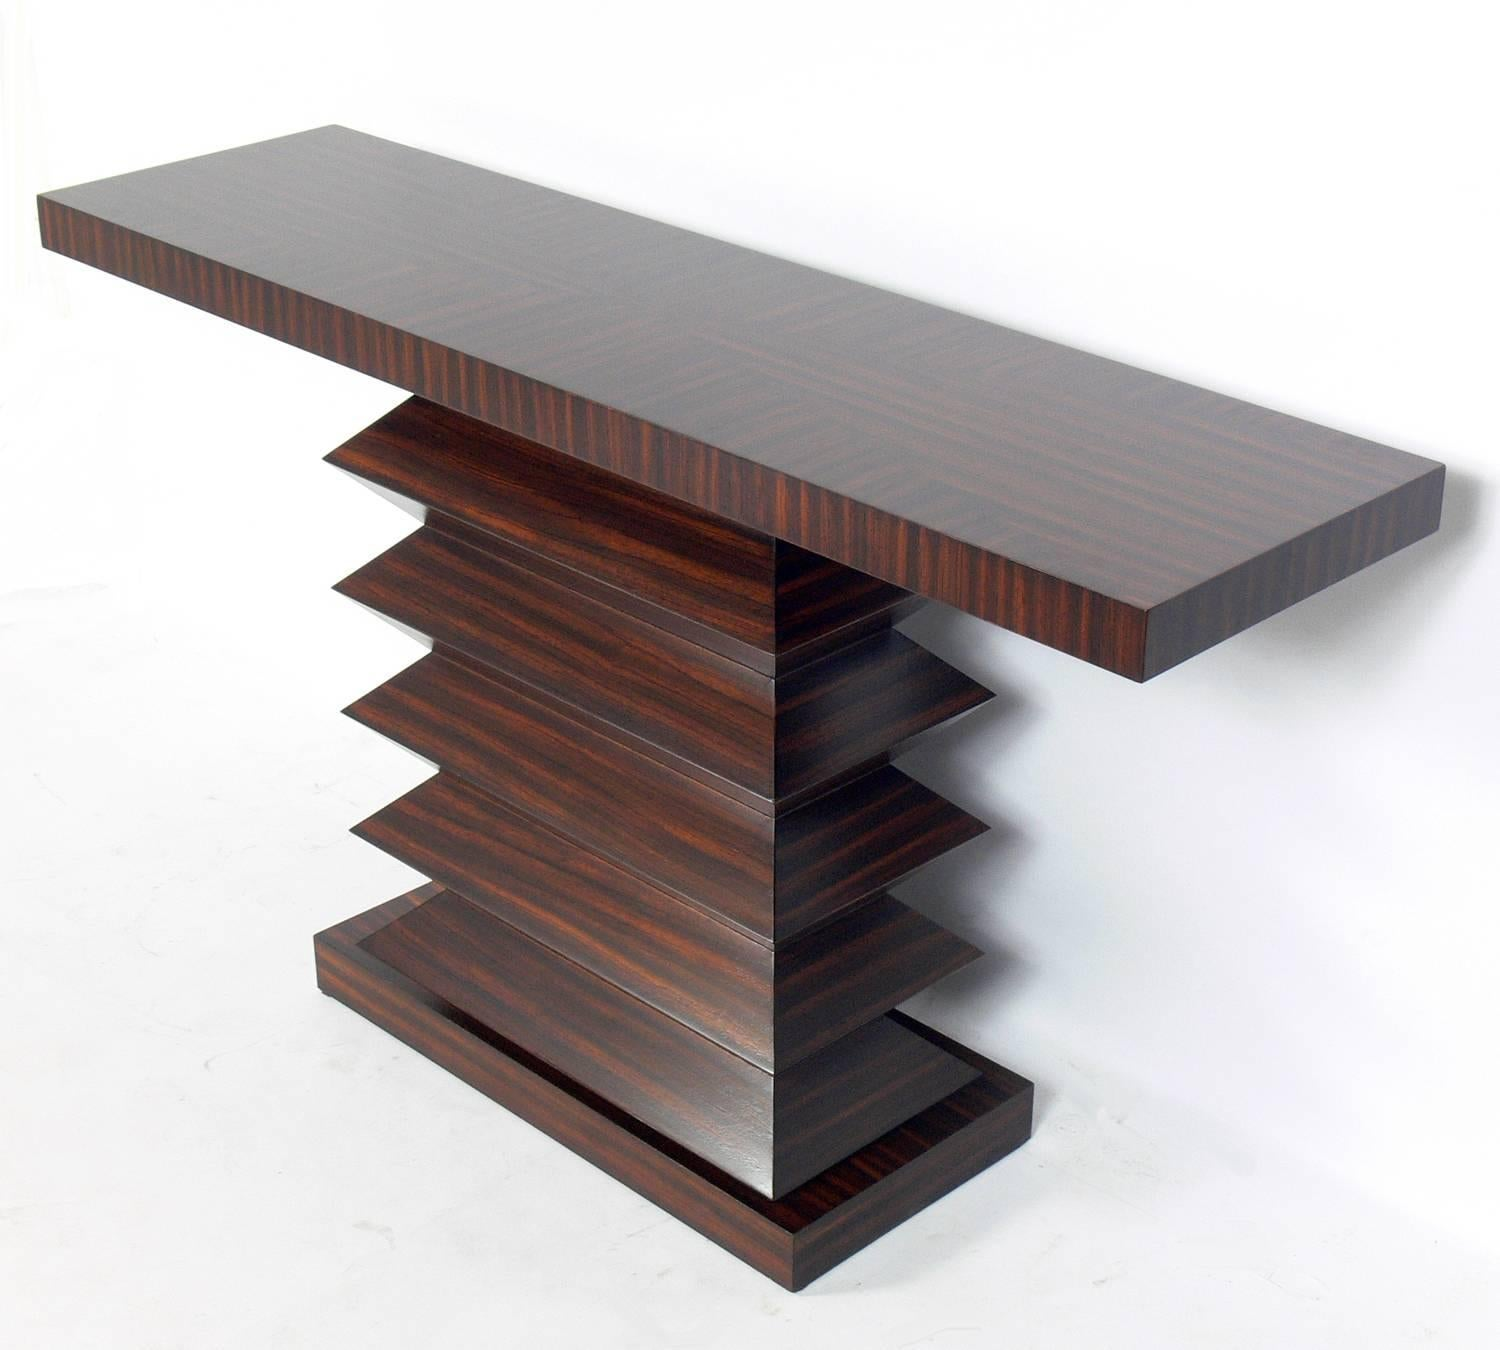 Delicieux Sculptural Zebra Wood Console Table, American, Circa 1990s. Beautifully  Bookmatched Wood With Incredible